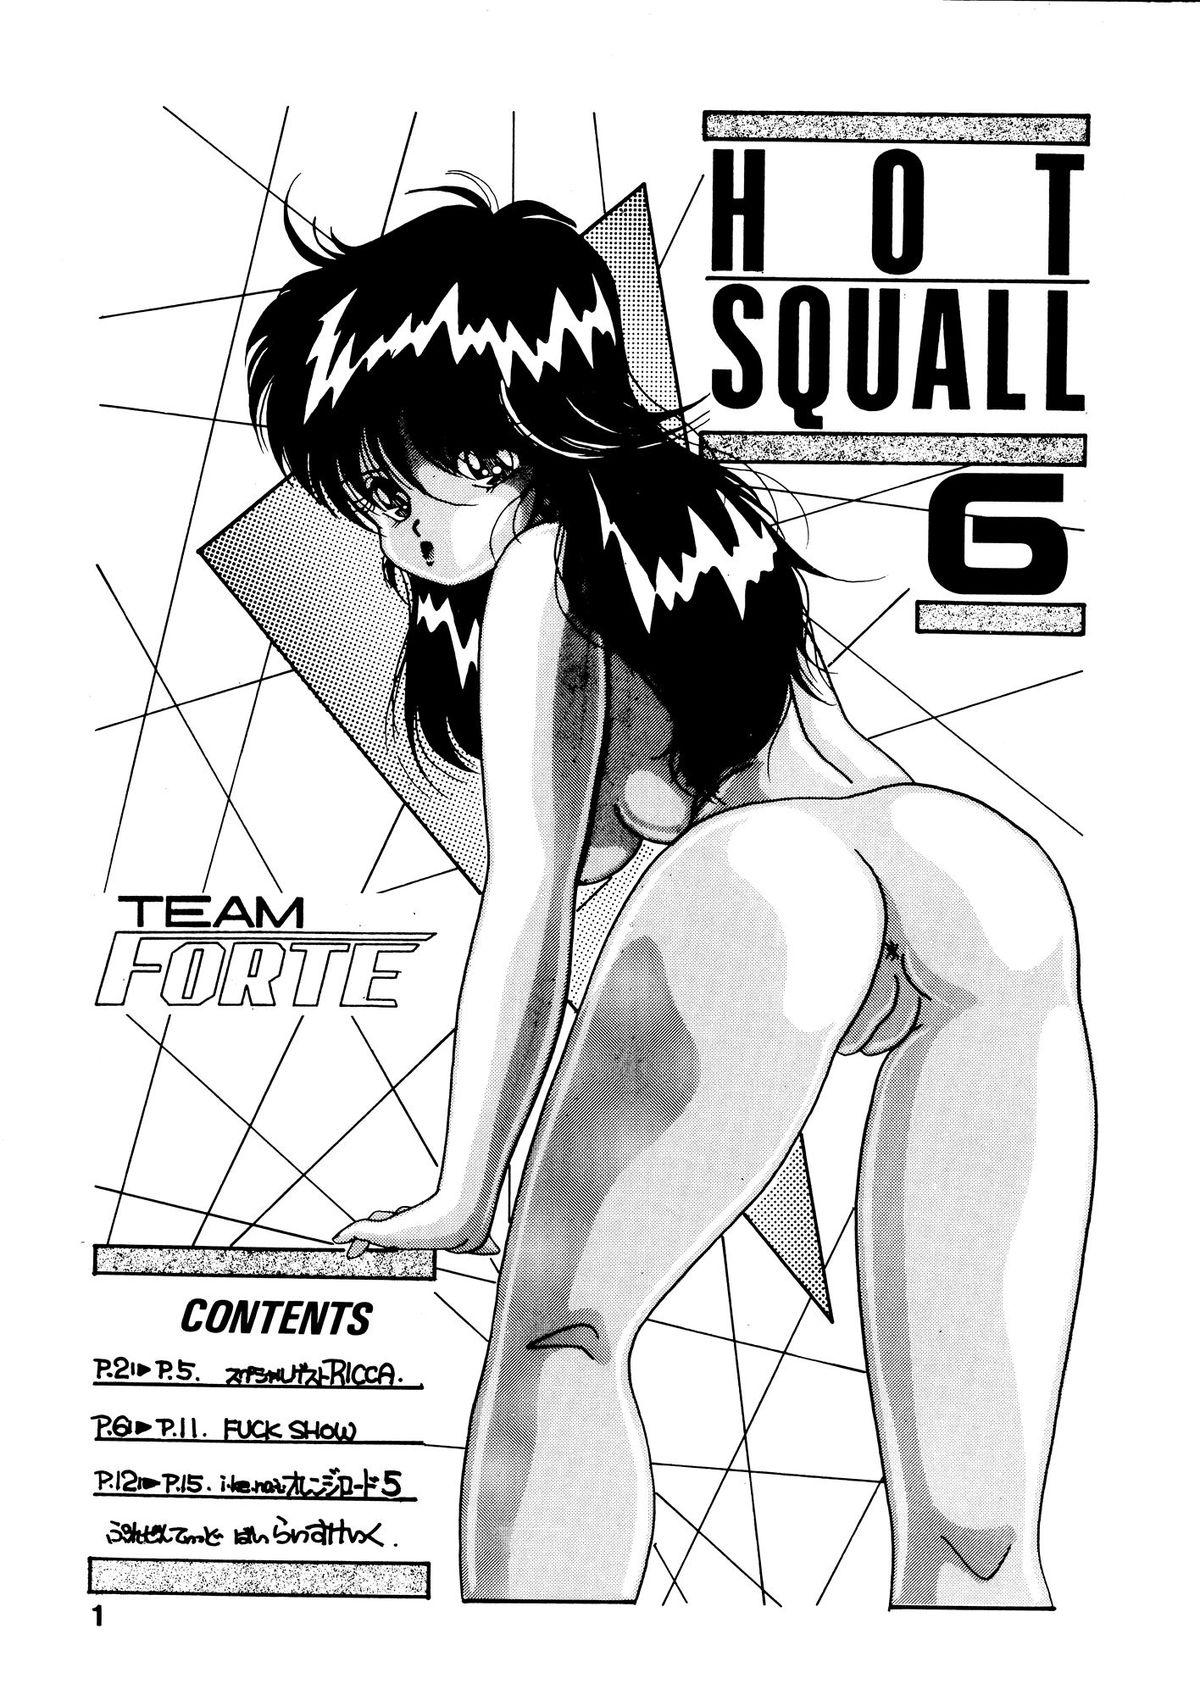 FINAL HOT SQUALL 1